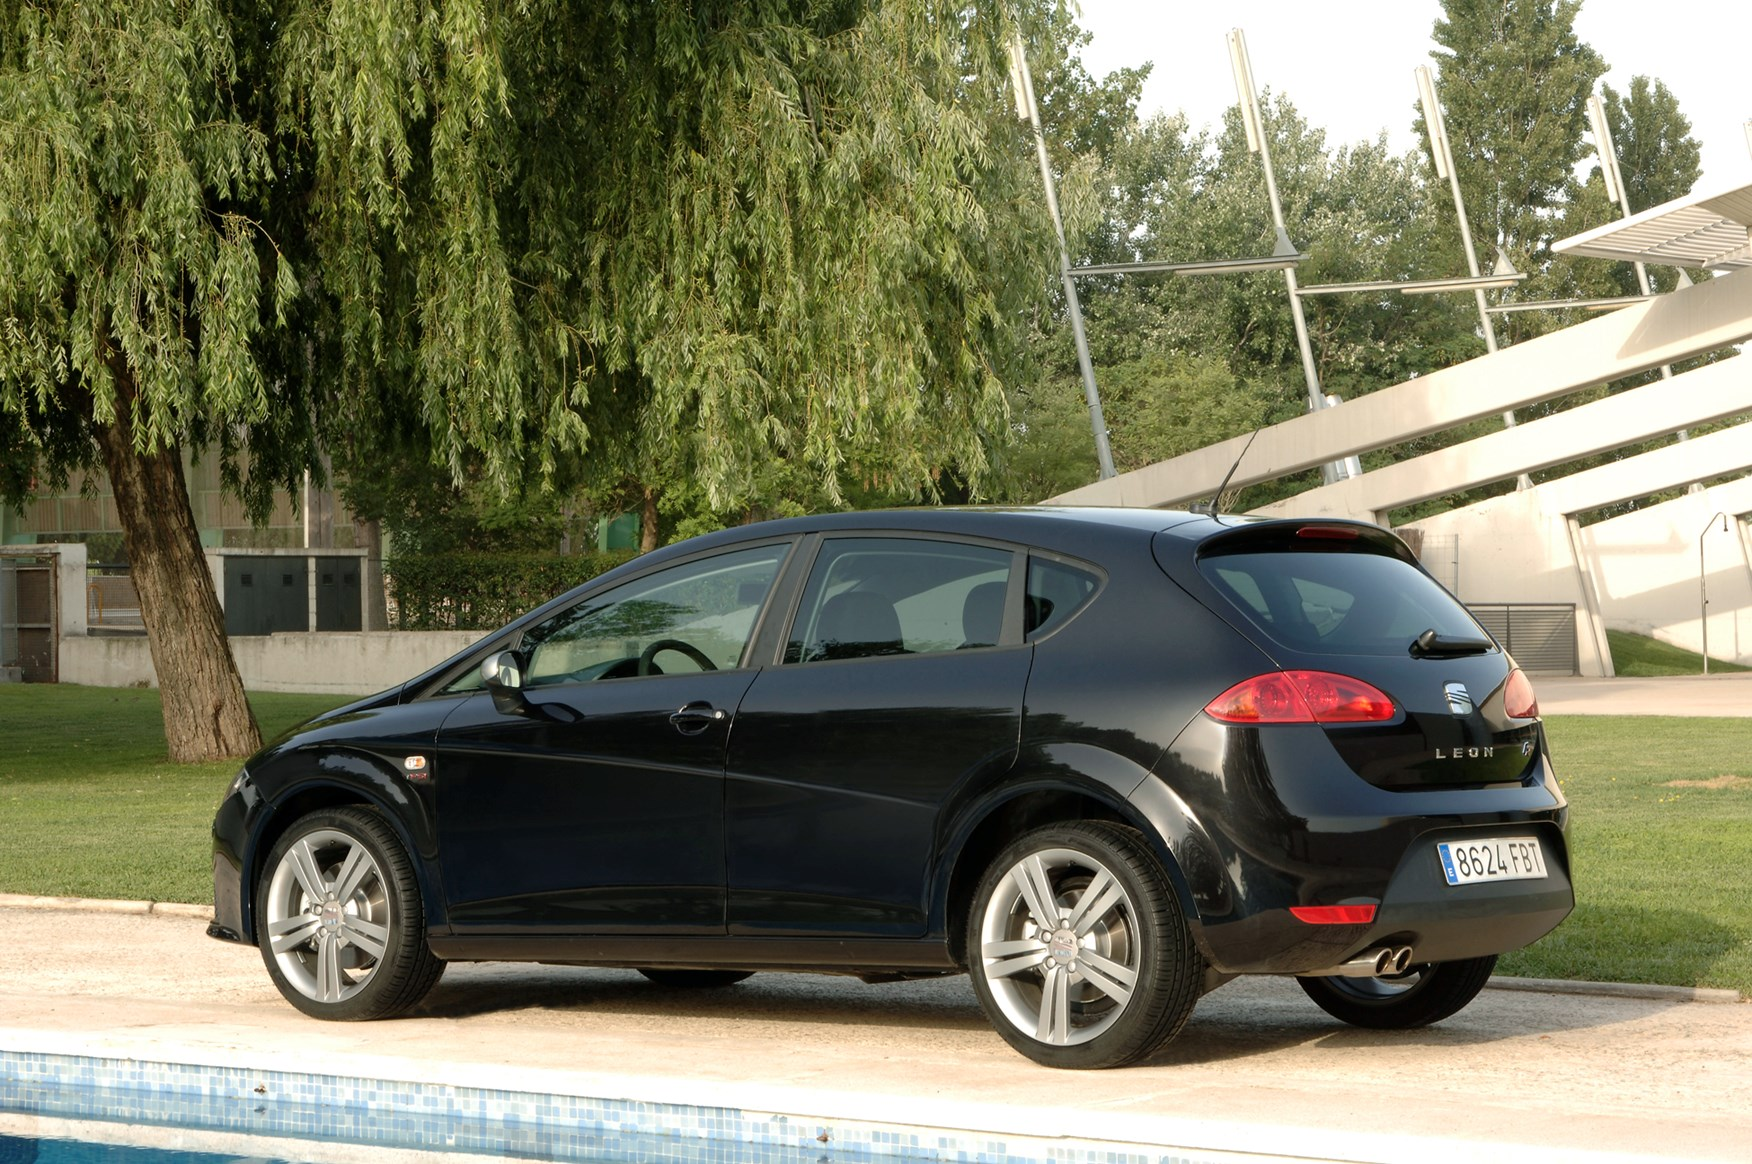 2007 seat leon photos informations articles. Black Bedroom Furniture Sets. Home Design Ideas